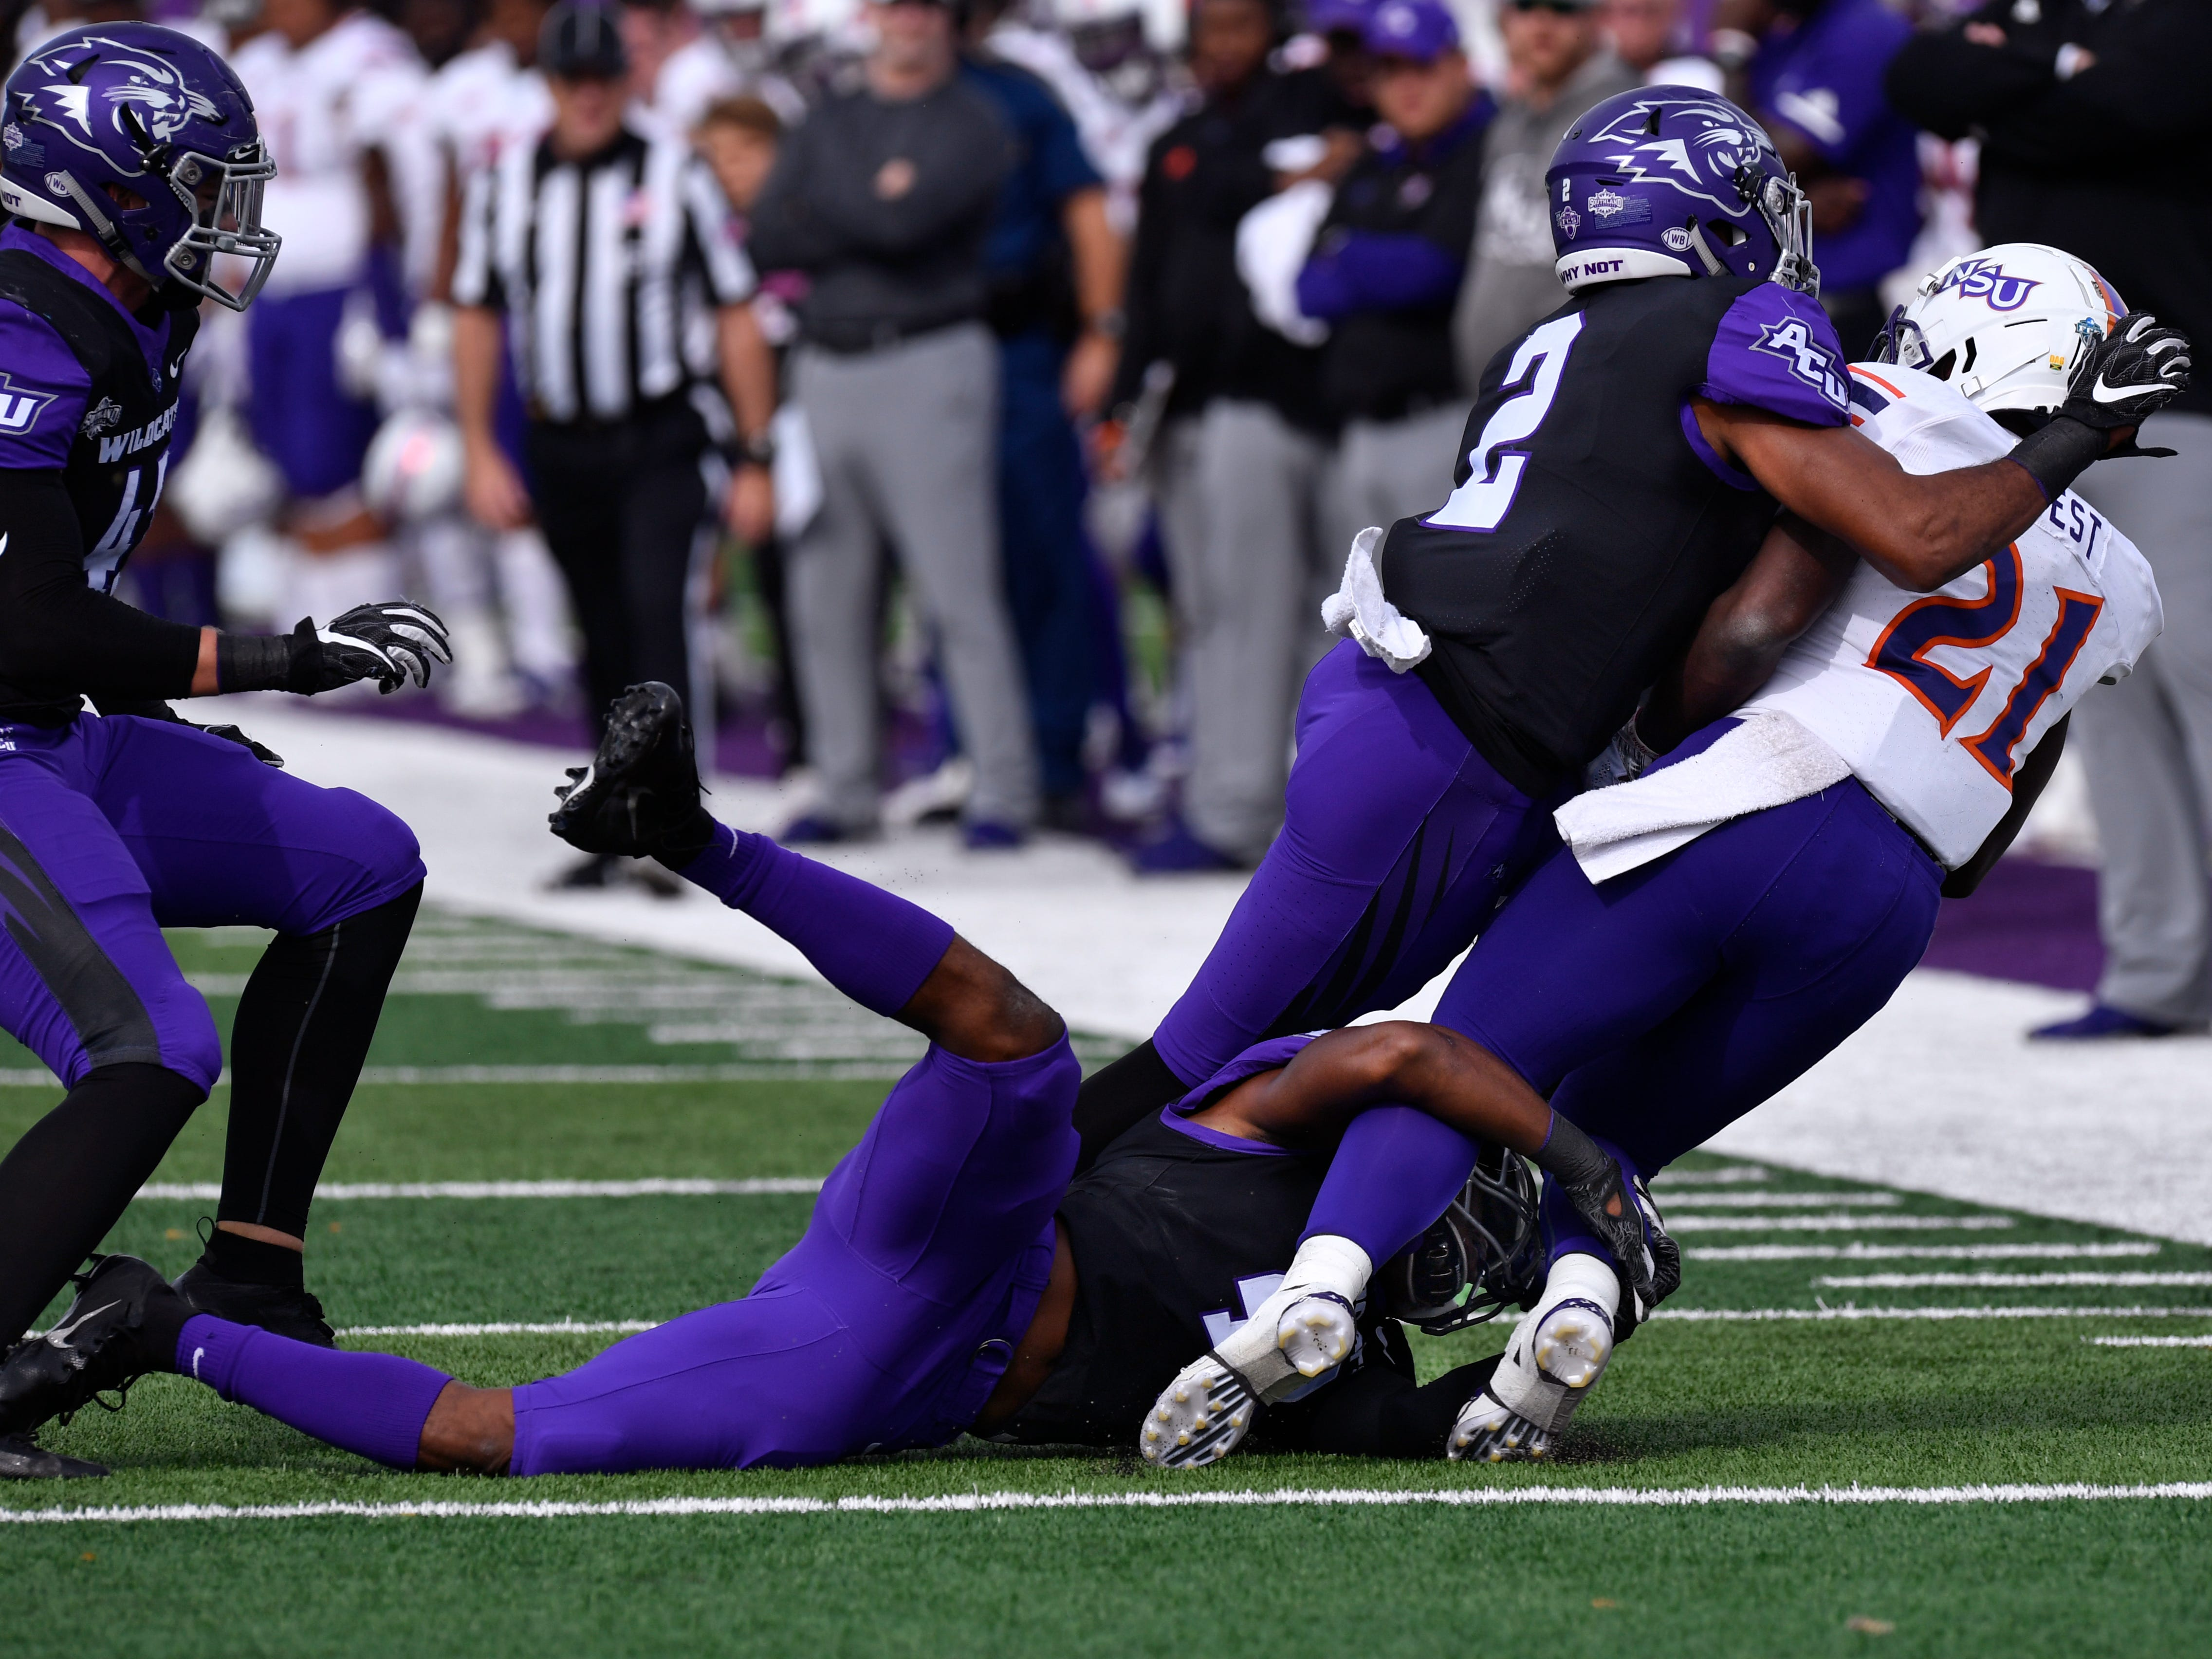 Wildcats' Alex Lofton grabs the legs of Northwestern State's Jared West while teammate Brandon Richmond finishes the job during Saturday's game Nov. 3, 2018.  Final score was 49-47, Abilene Christian University.